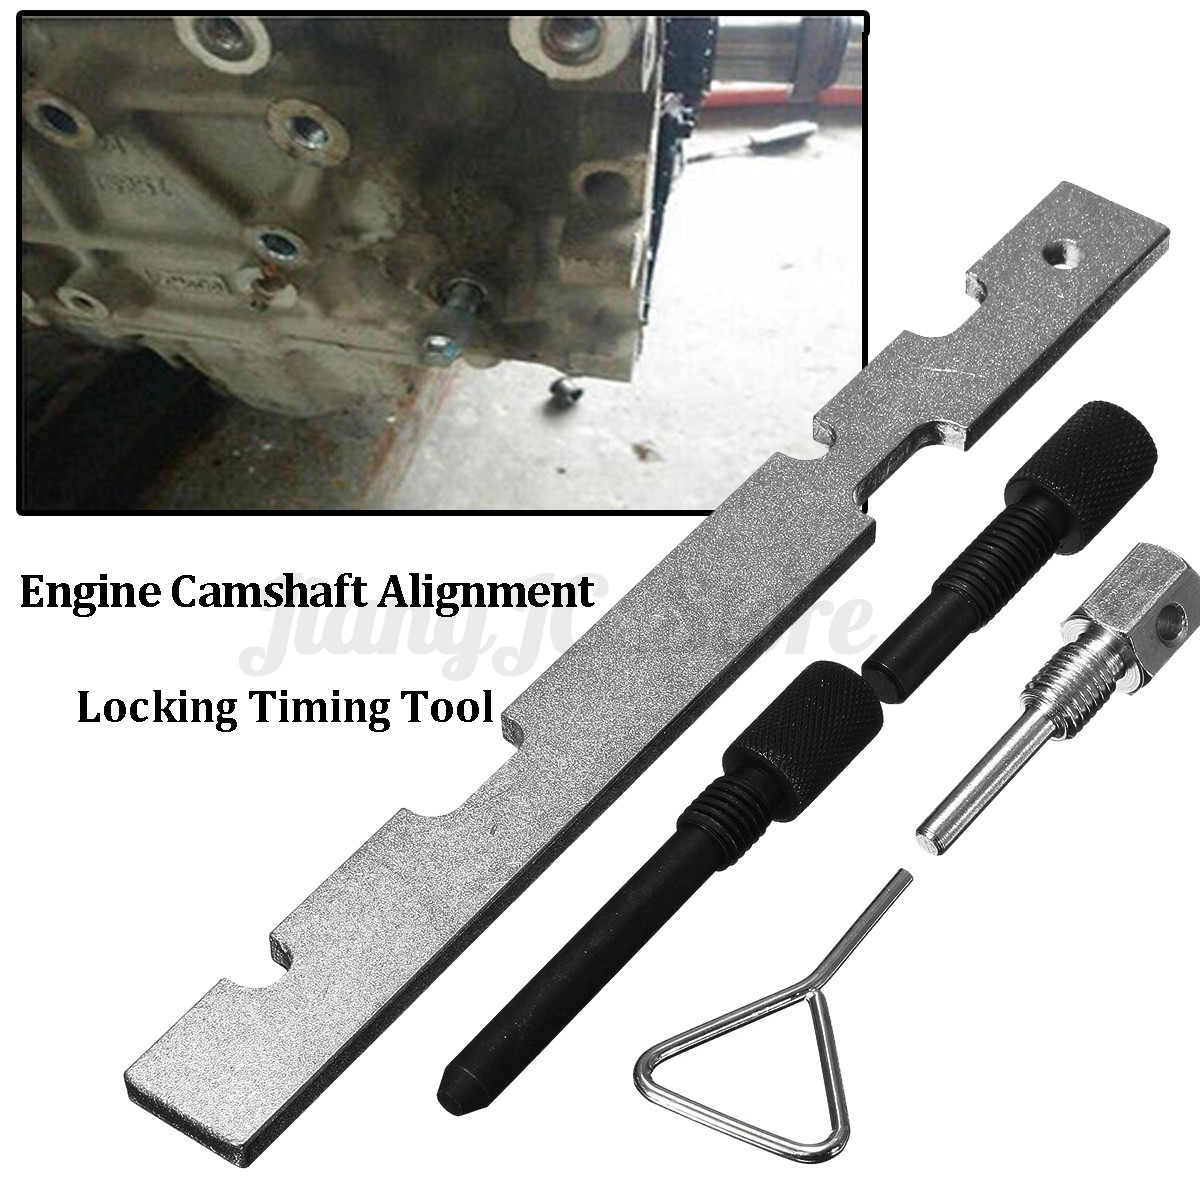 5Pc Engine Camshaft Cam Lock Locking Timing Alignment Tool